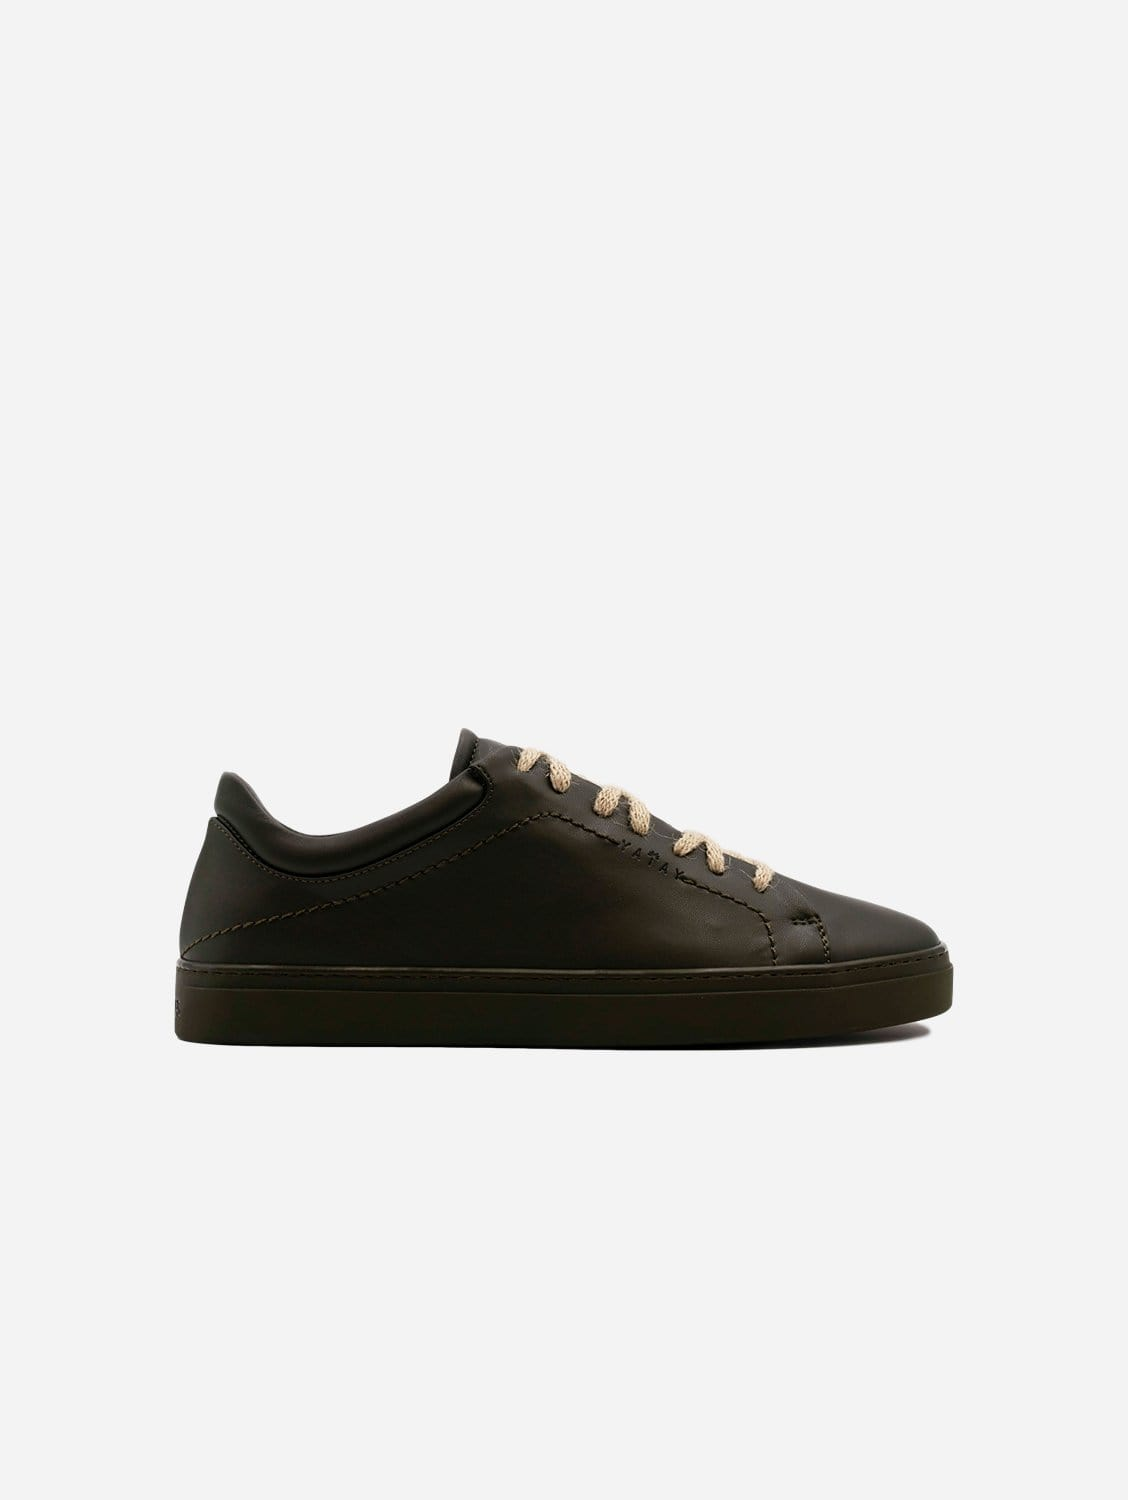 Neven Vegan Leather Low-Top Trainer | Olive Green